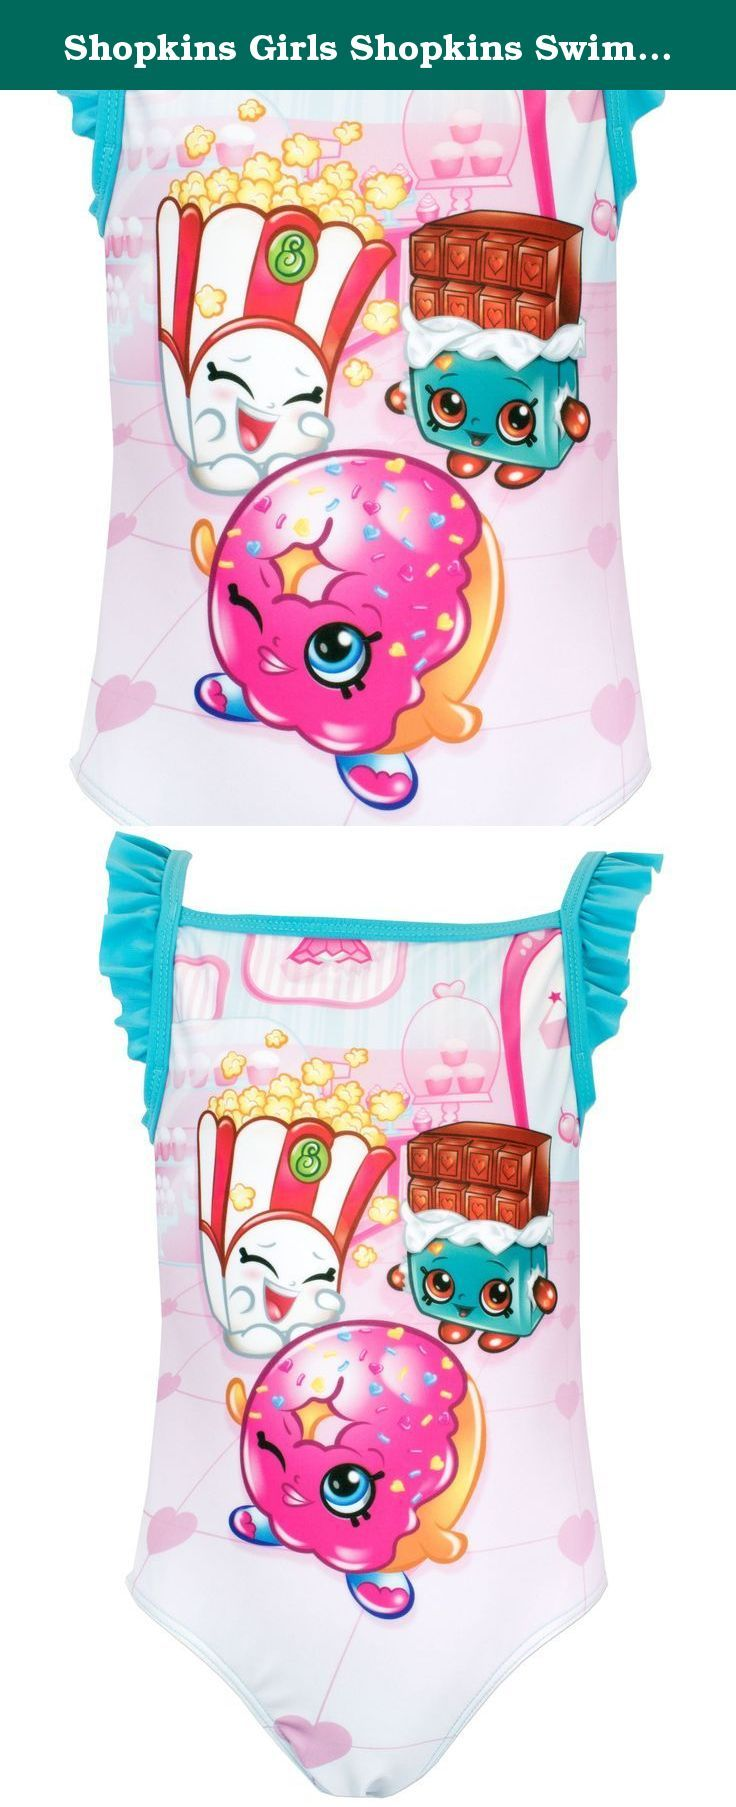 Shopkins Girls Shopkins Swimsuit Size 7. Girls Shopkins Swimming Costume. She'll be the sweetest looking little girl this summer in this cute Shopkins bathing suit! With favourites such as Donna Donut, Poppy Corn & Cheeky Chocolate in the cute all over print, her friends will be wanting to know where they can get theirs from!.